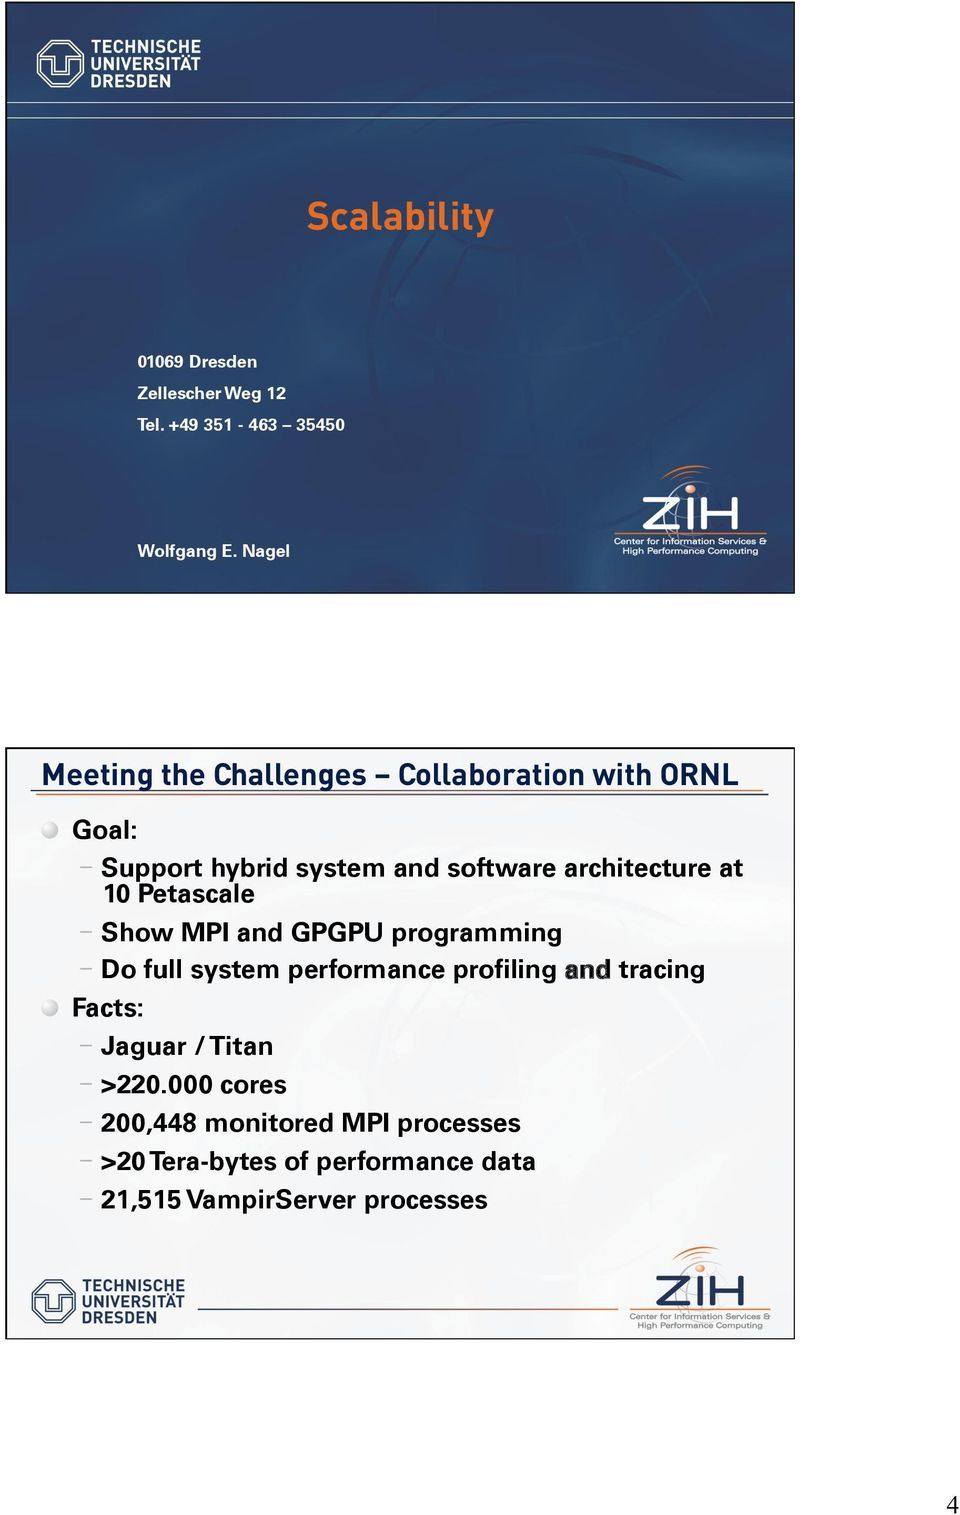 Goal: - Support hybrid system and software architecture at 10 Petascale - Show MPI and GPGPU programming -